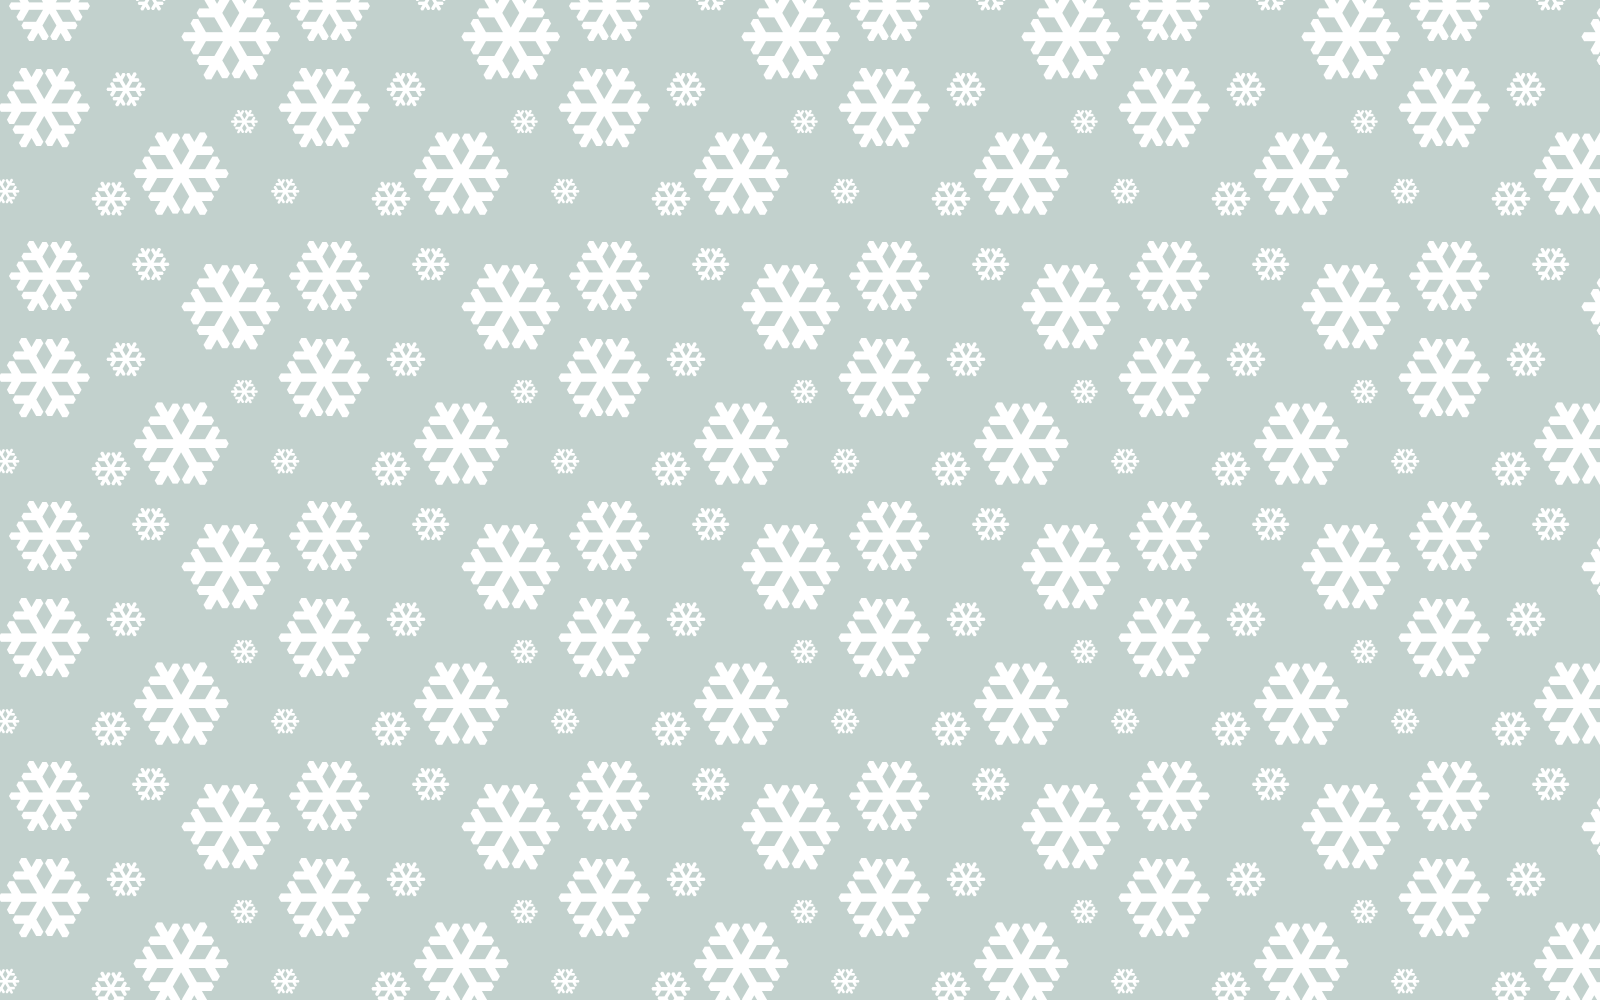 Preview Free Snowflake Images, Verdell Hayhurst